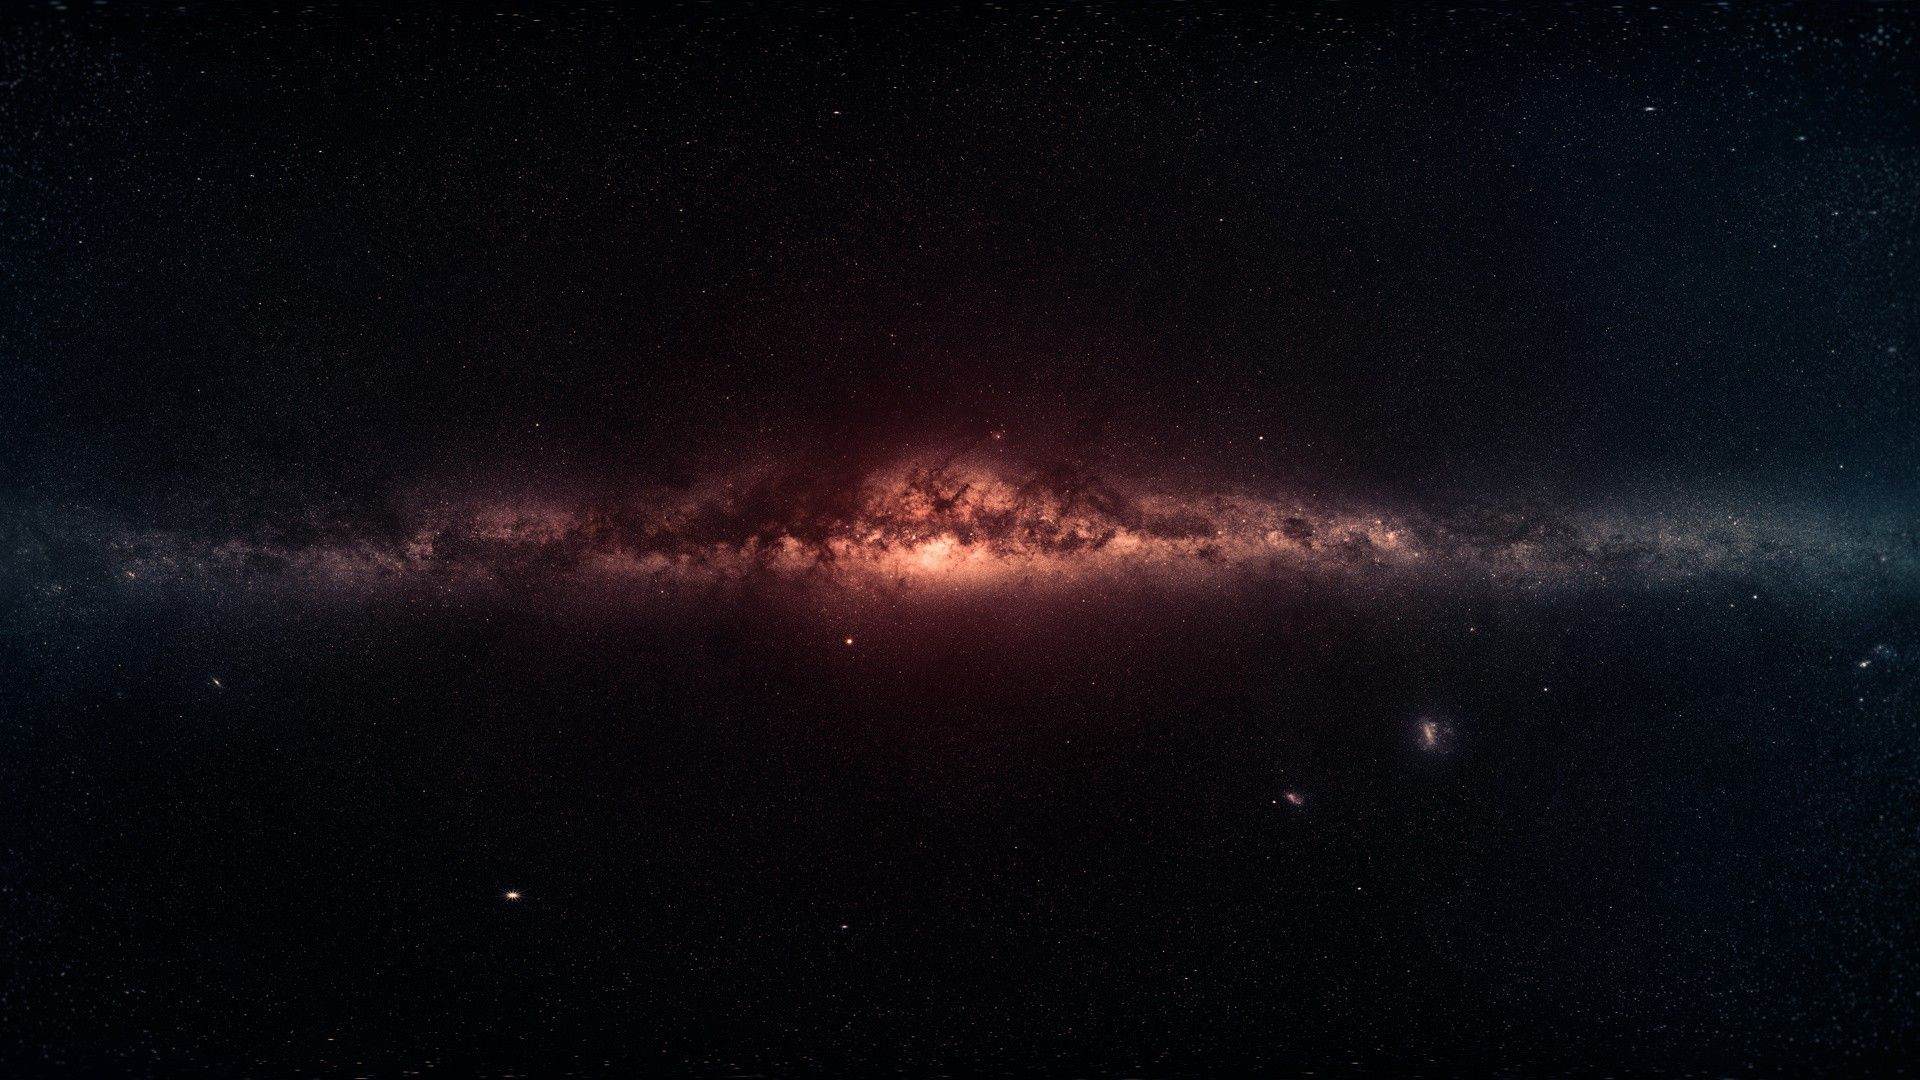 Outer - Milky Way , HD Wallpaper & Backgrounds